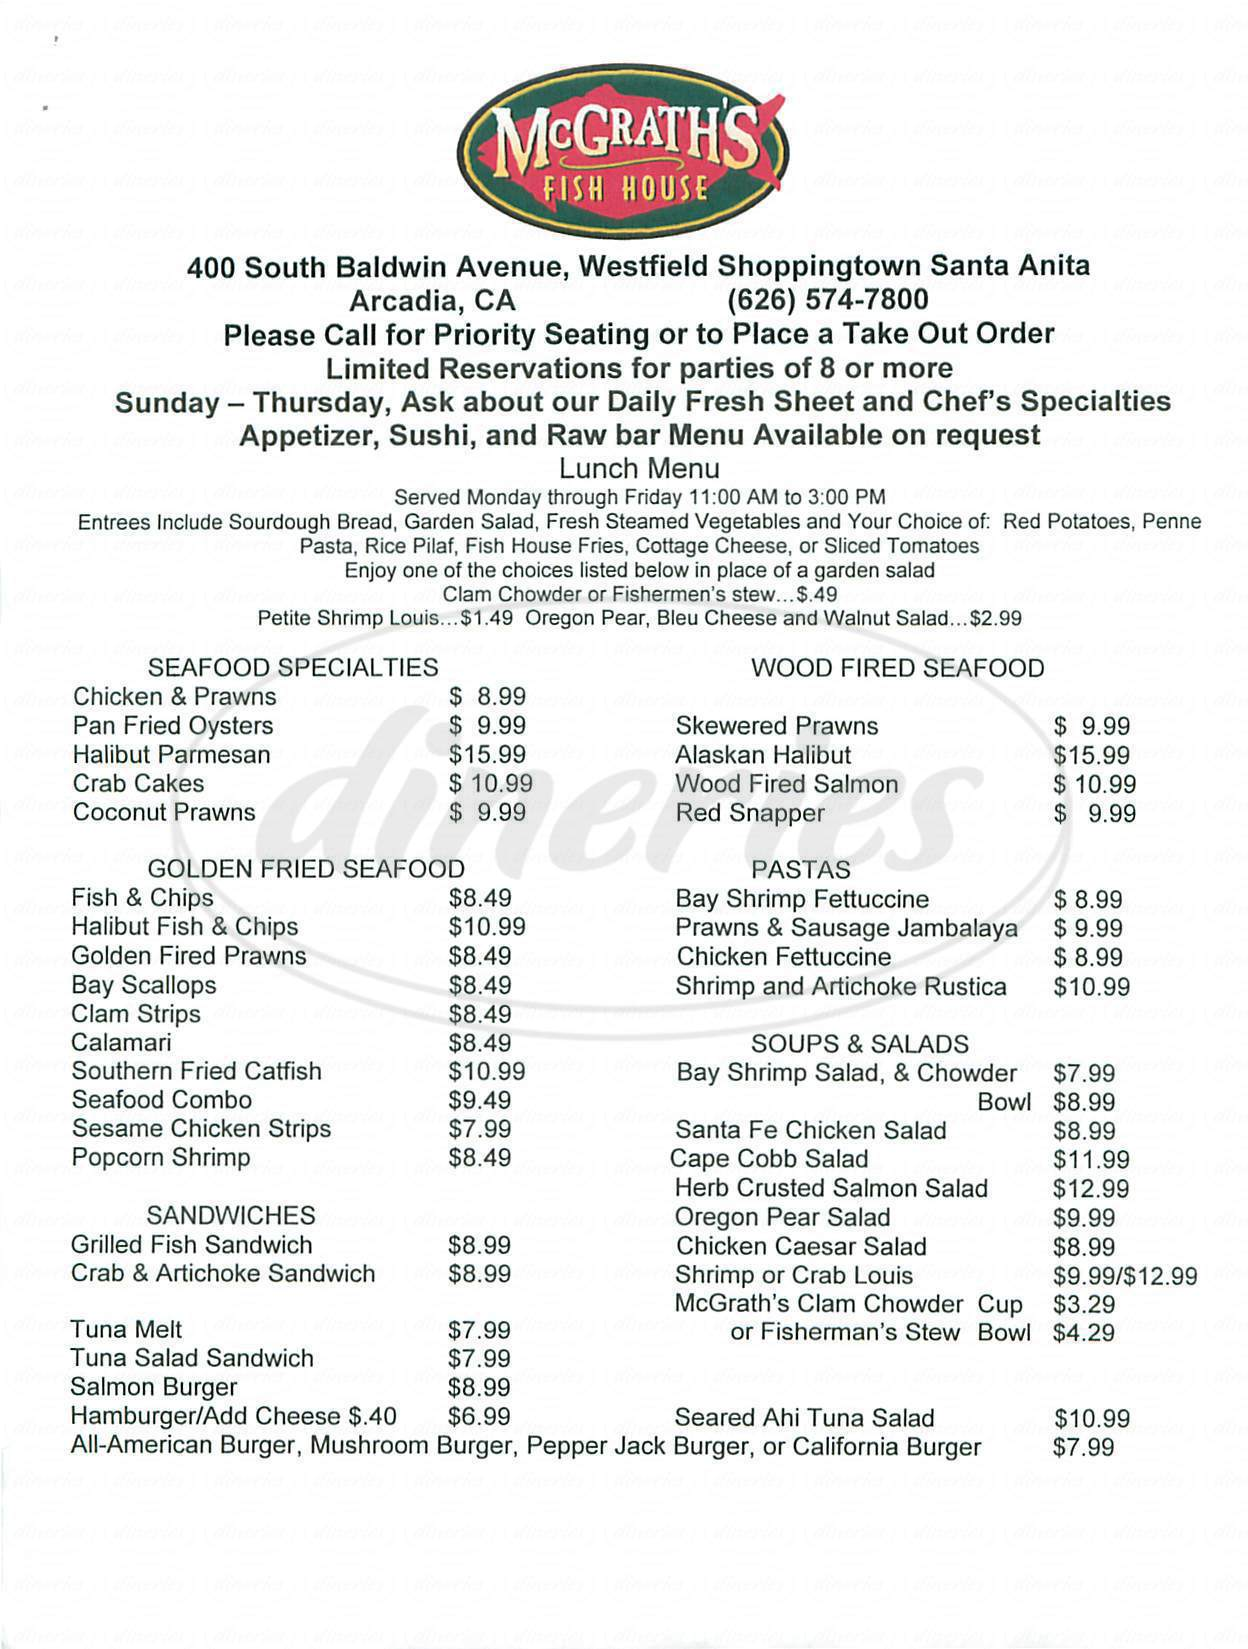 menu for McGrath's Fish House